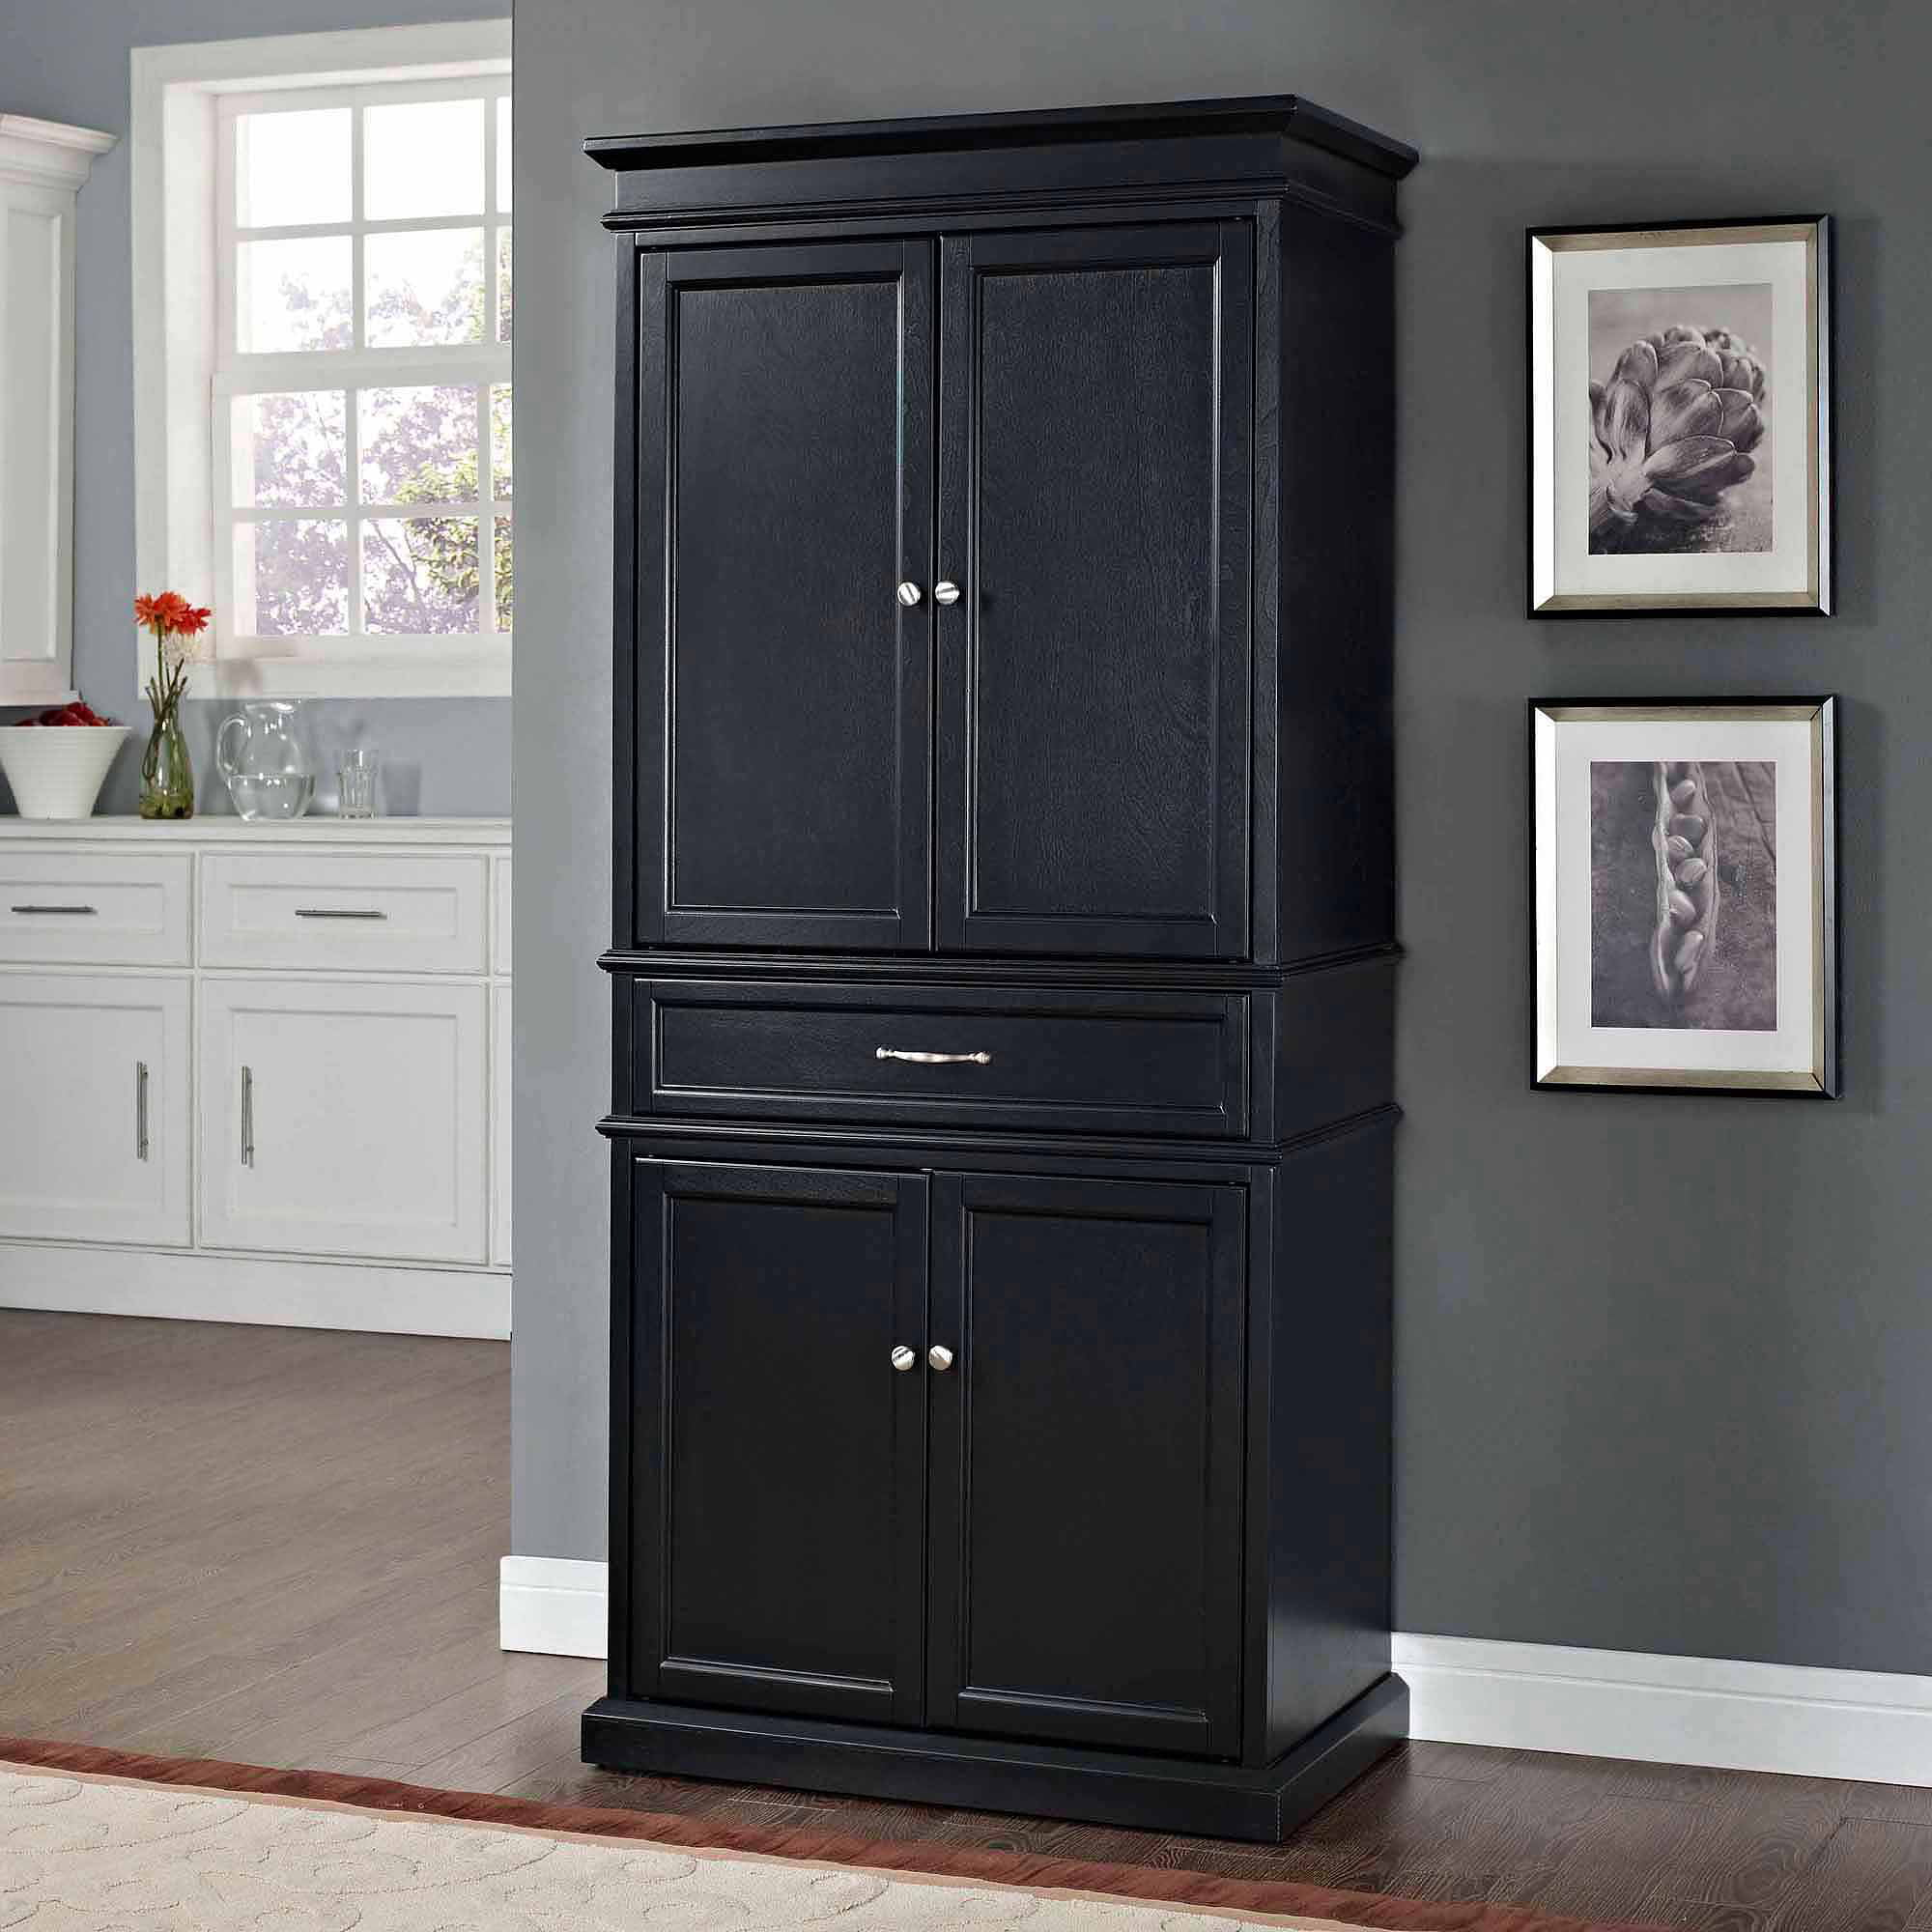 Crosley furniture parsons pantry walmart com